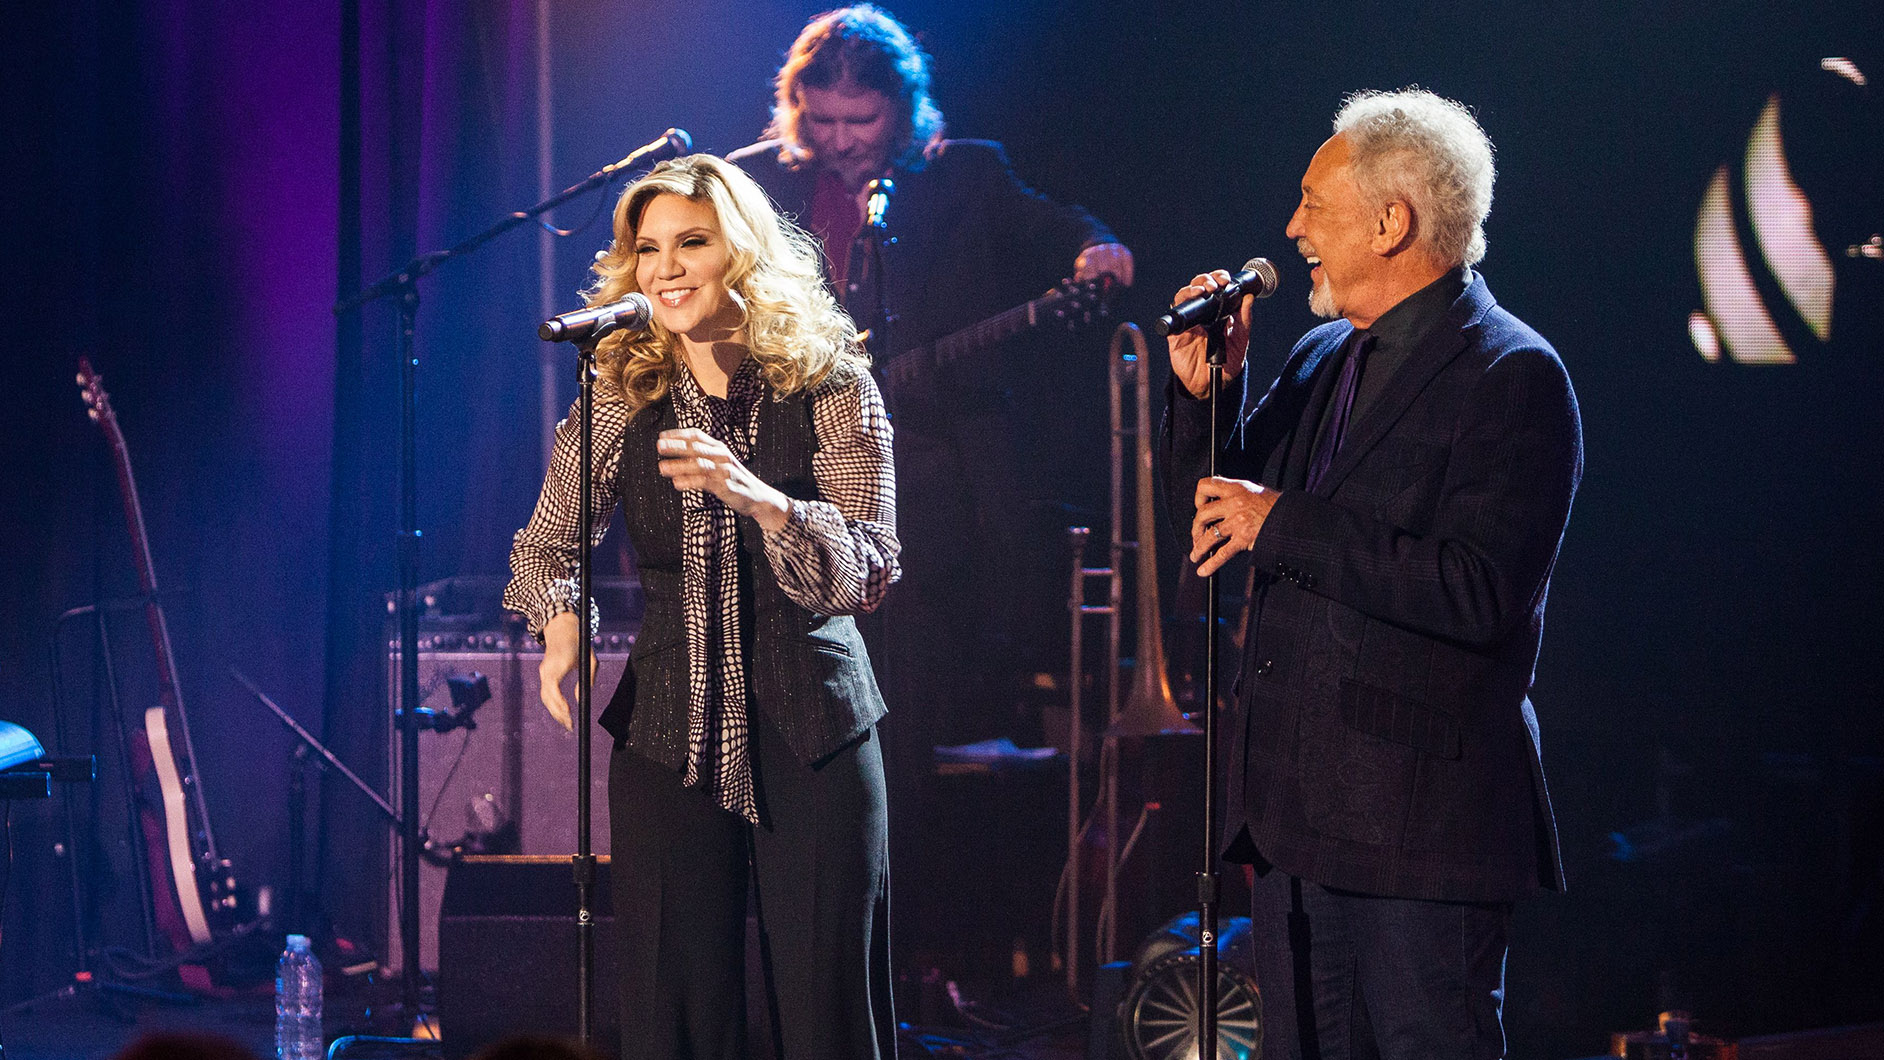 Special guest Alison Krauss joins Tom Jones in Tom Jones: A Sound stage Special Event. Photo courtesy Raney Images.